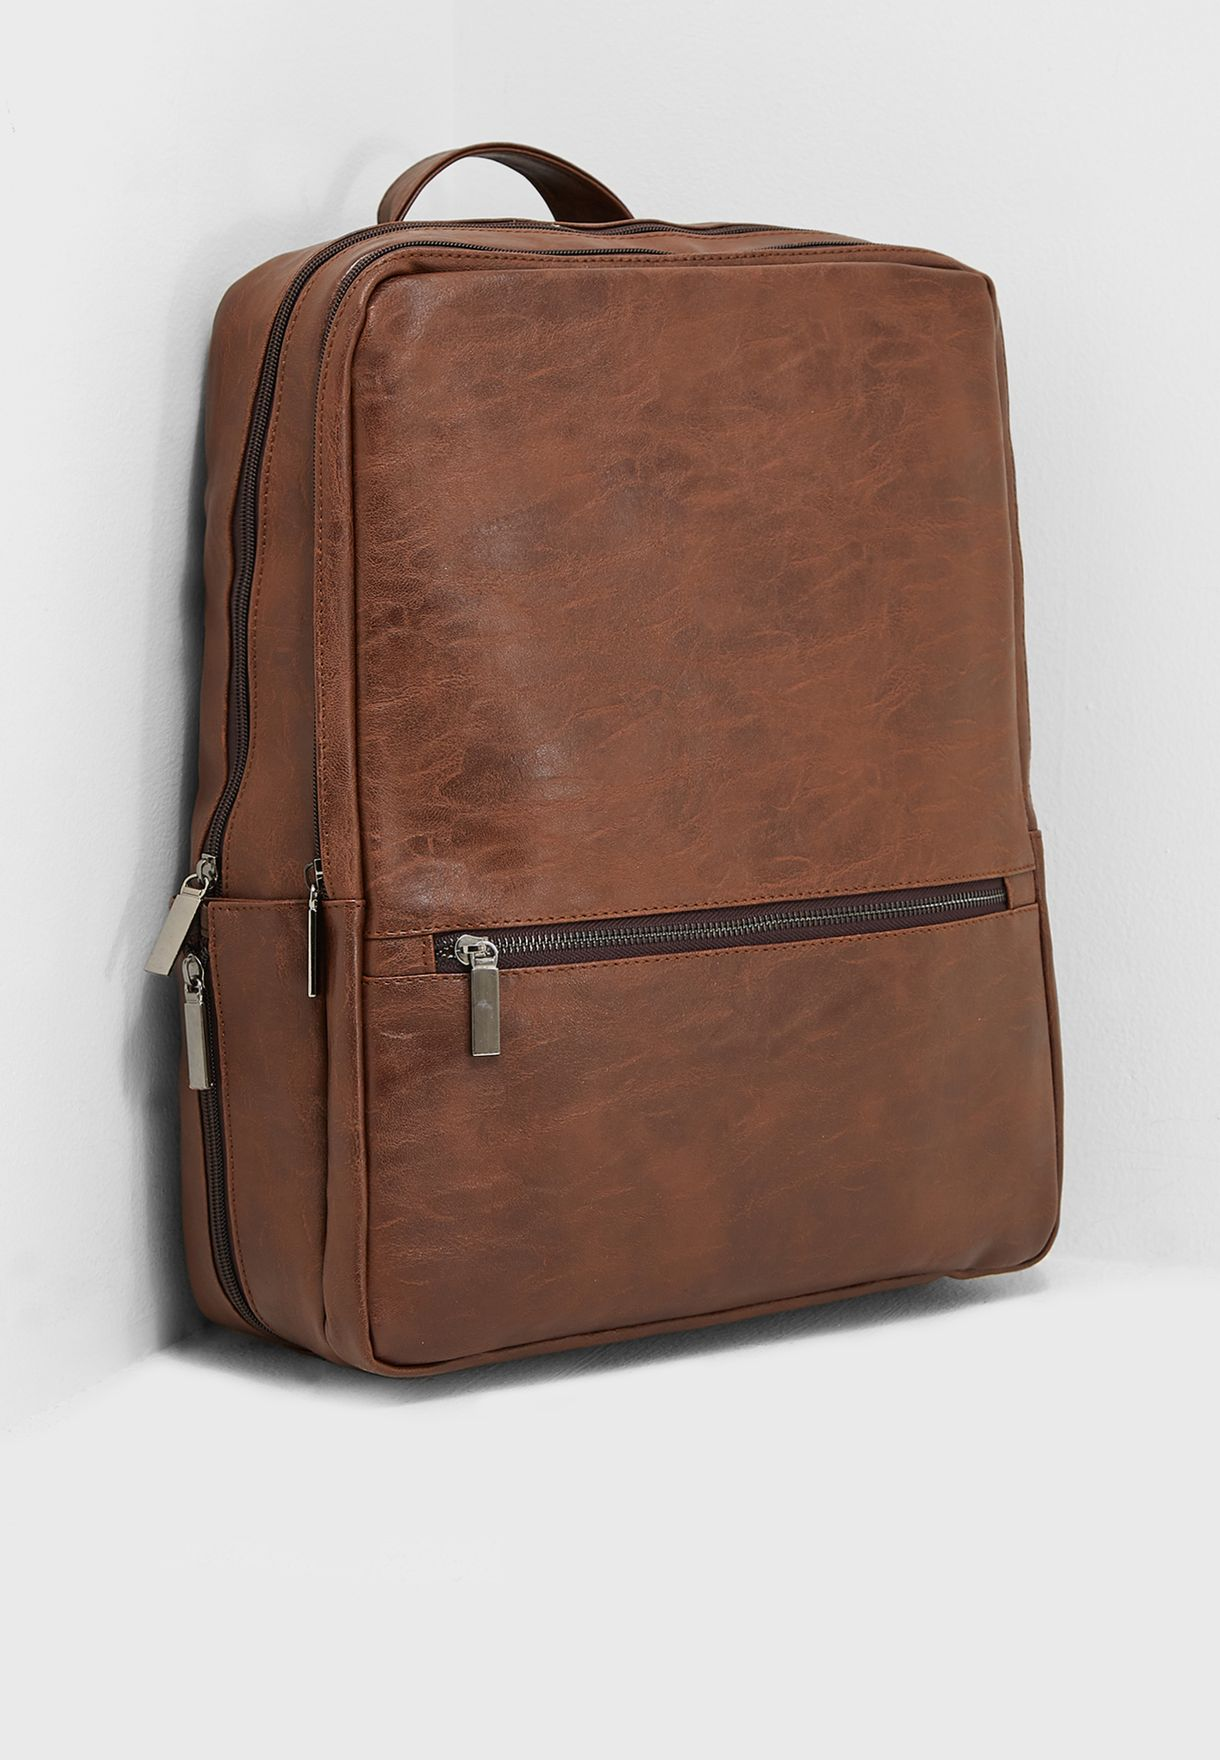 57913ac94a70 Shop Seventy five browns Faux Leather Laptop Sleeve Backpack ...